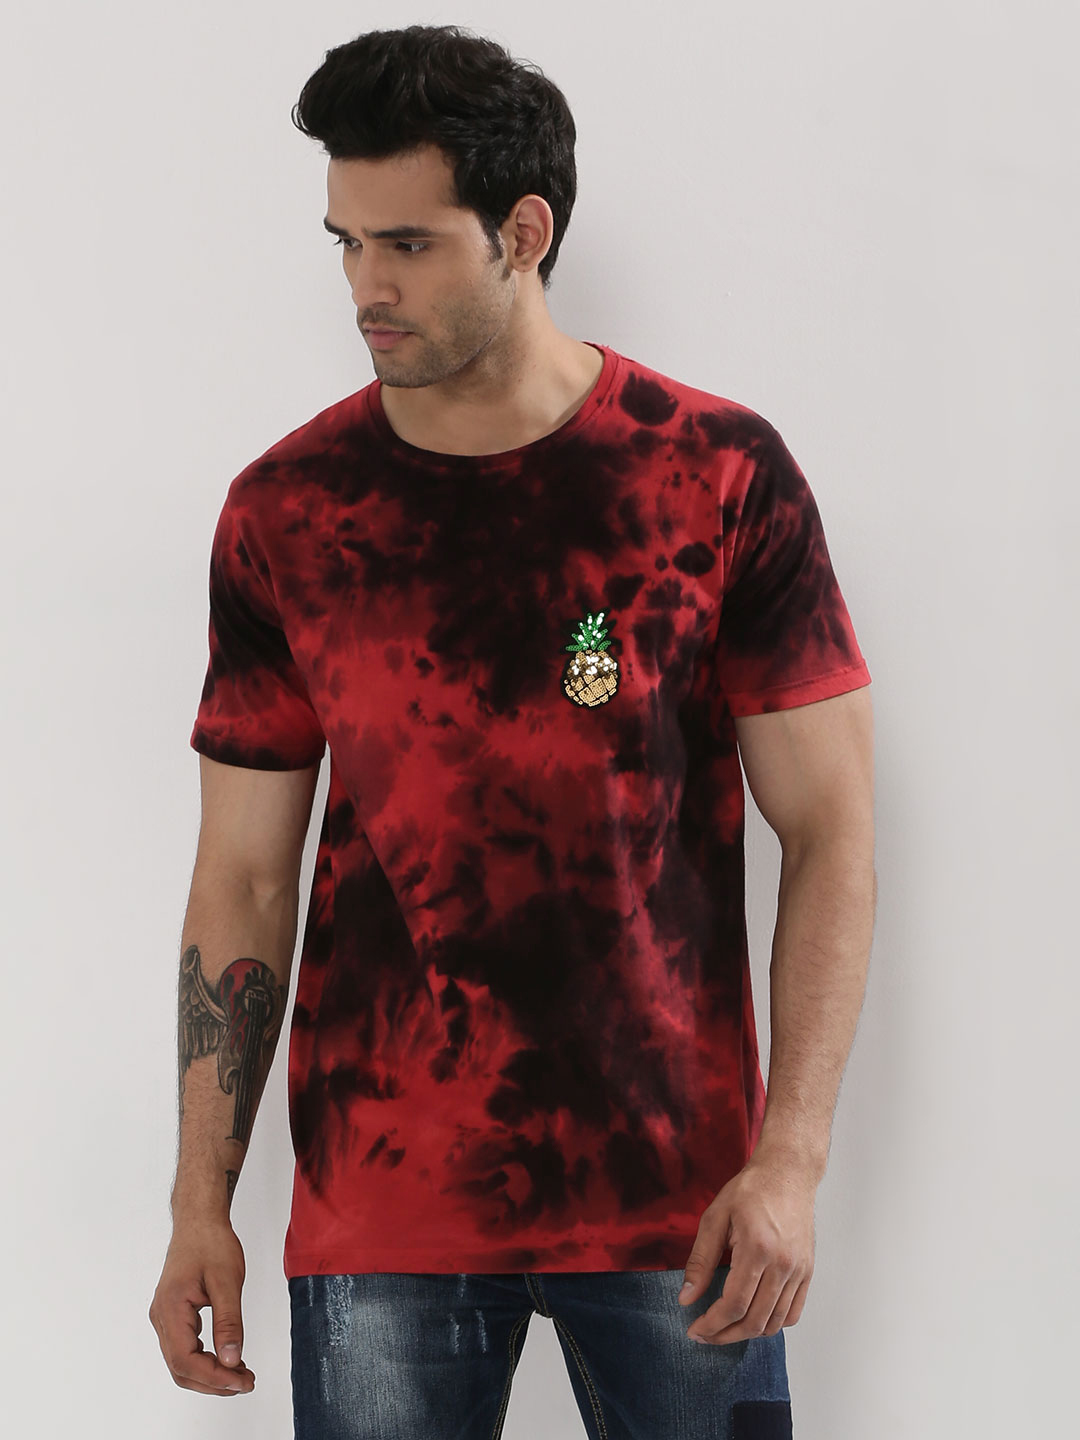 Adamo London Red/Black Tie-dye T-Shirt With Sequin Patch 1